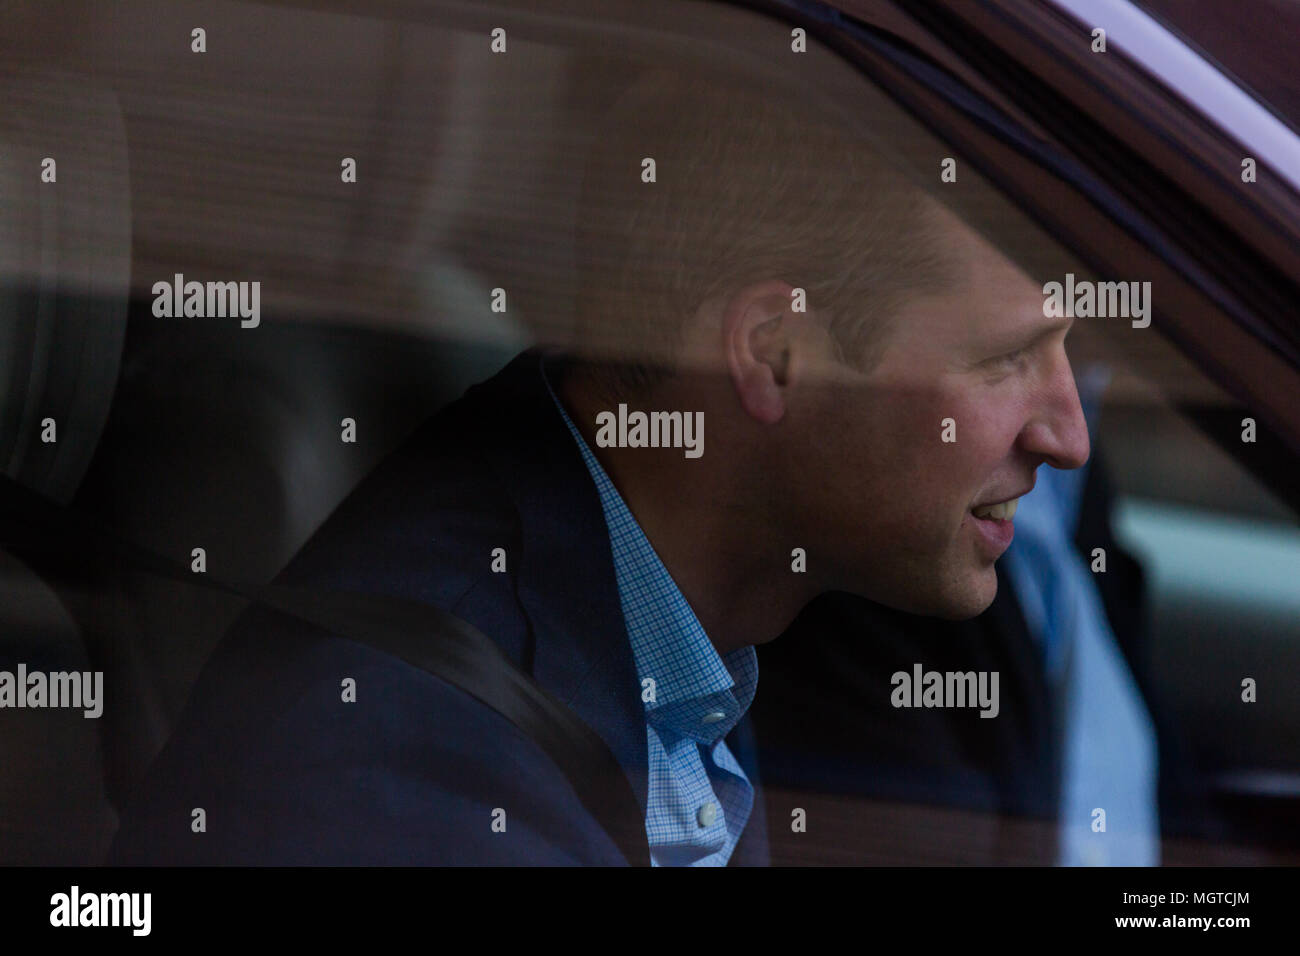 HRH Prince William, The Duke of Cambridge driving his family home from the Lindo Wing following the birth of his third child. - Stock Image